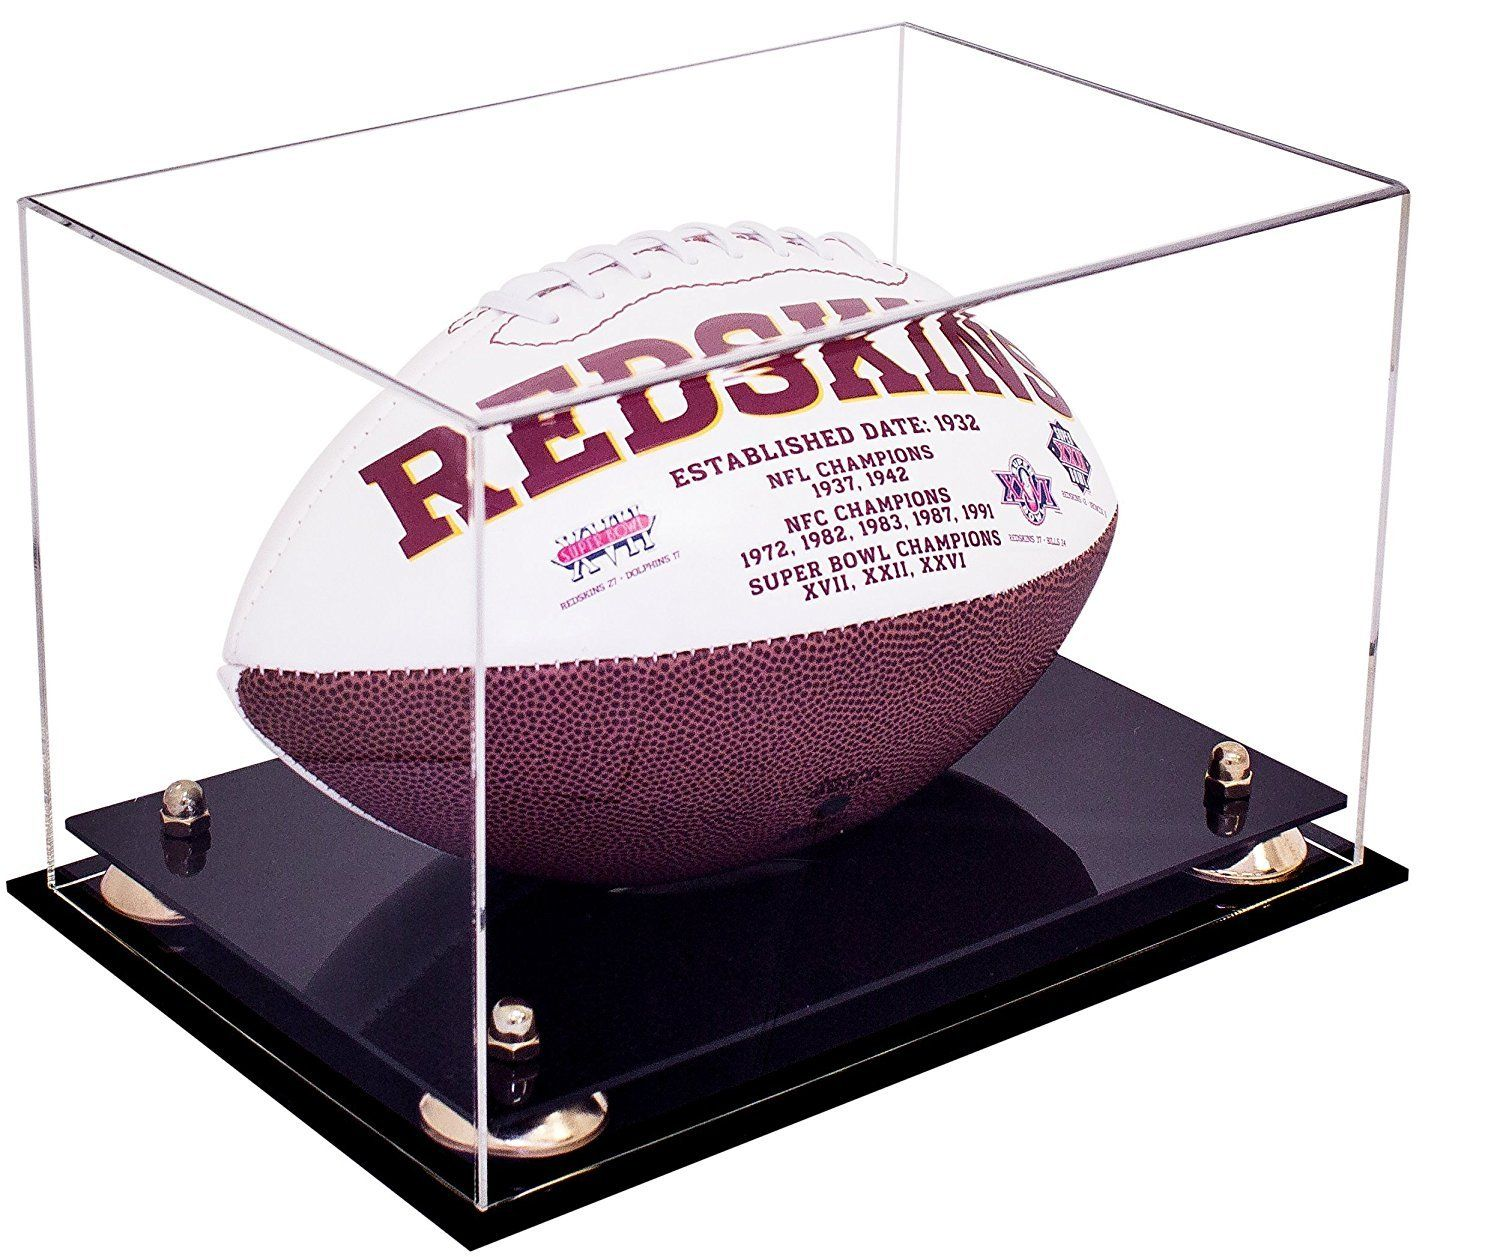 e10387af858 Deluxe Clear Acrylic Football Display Casewith Risers (A004)